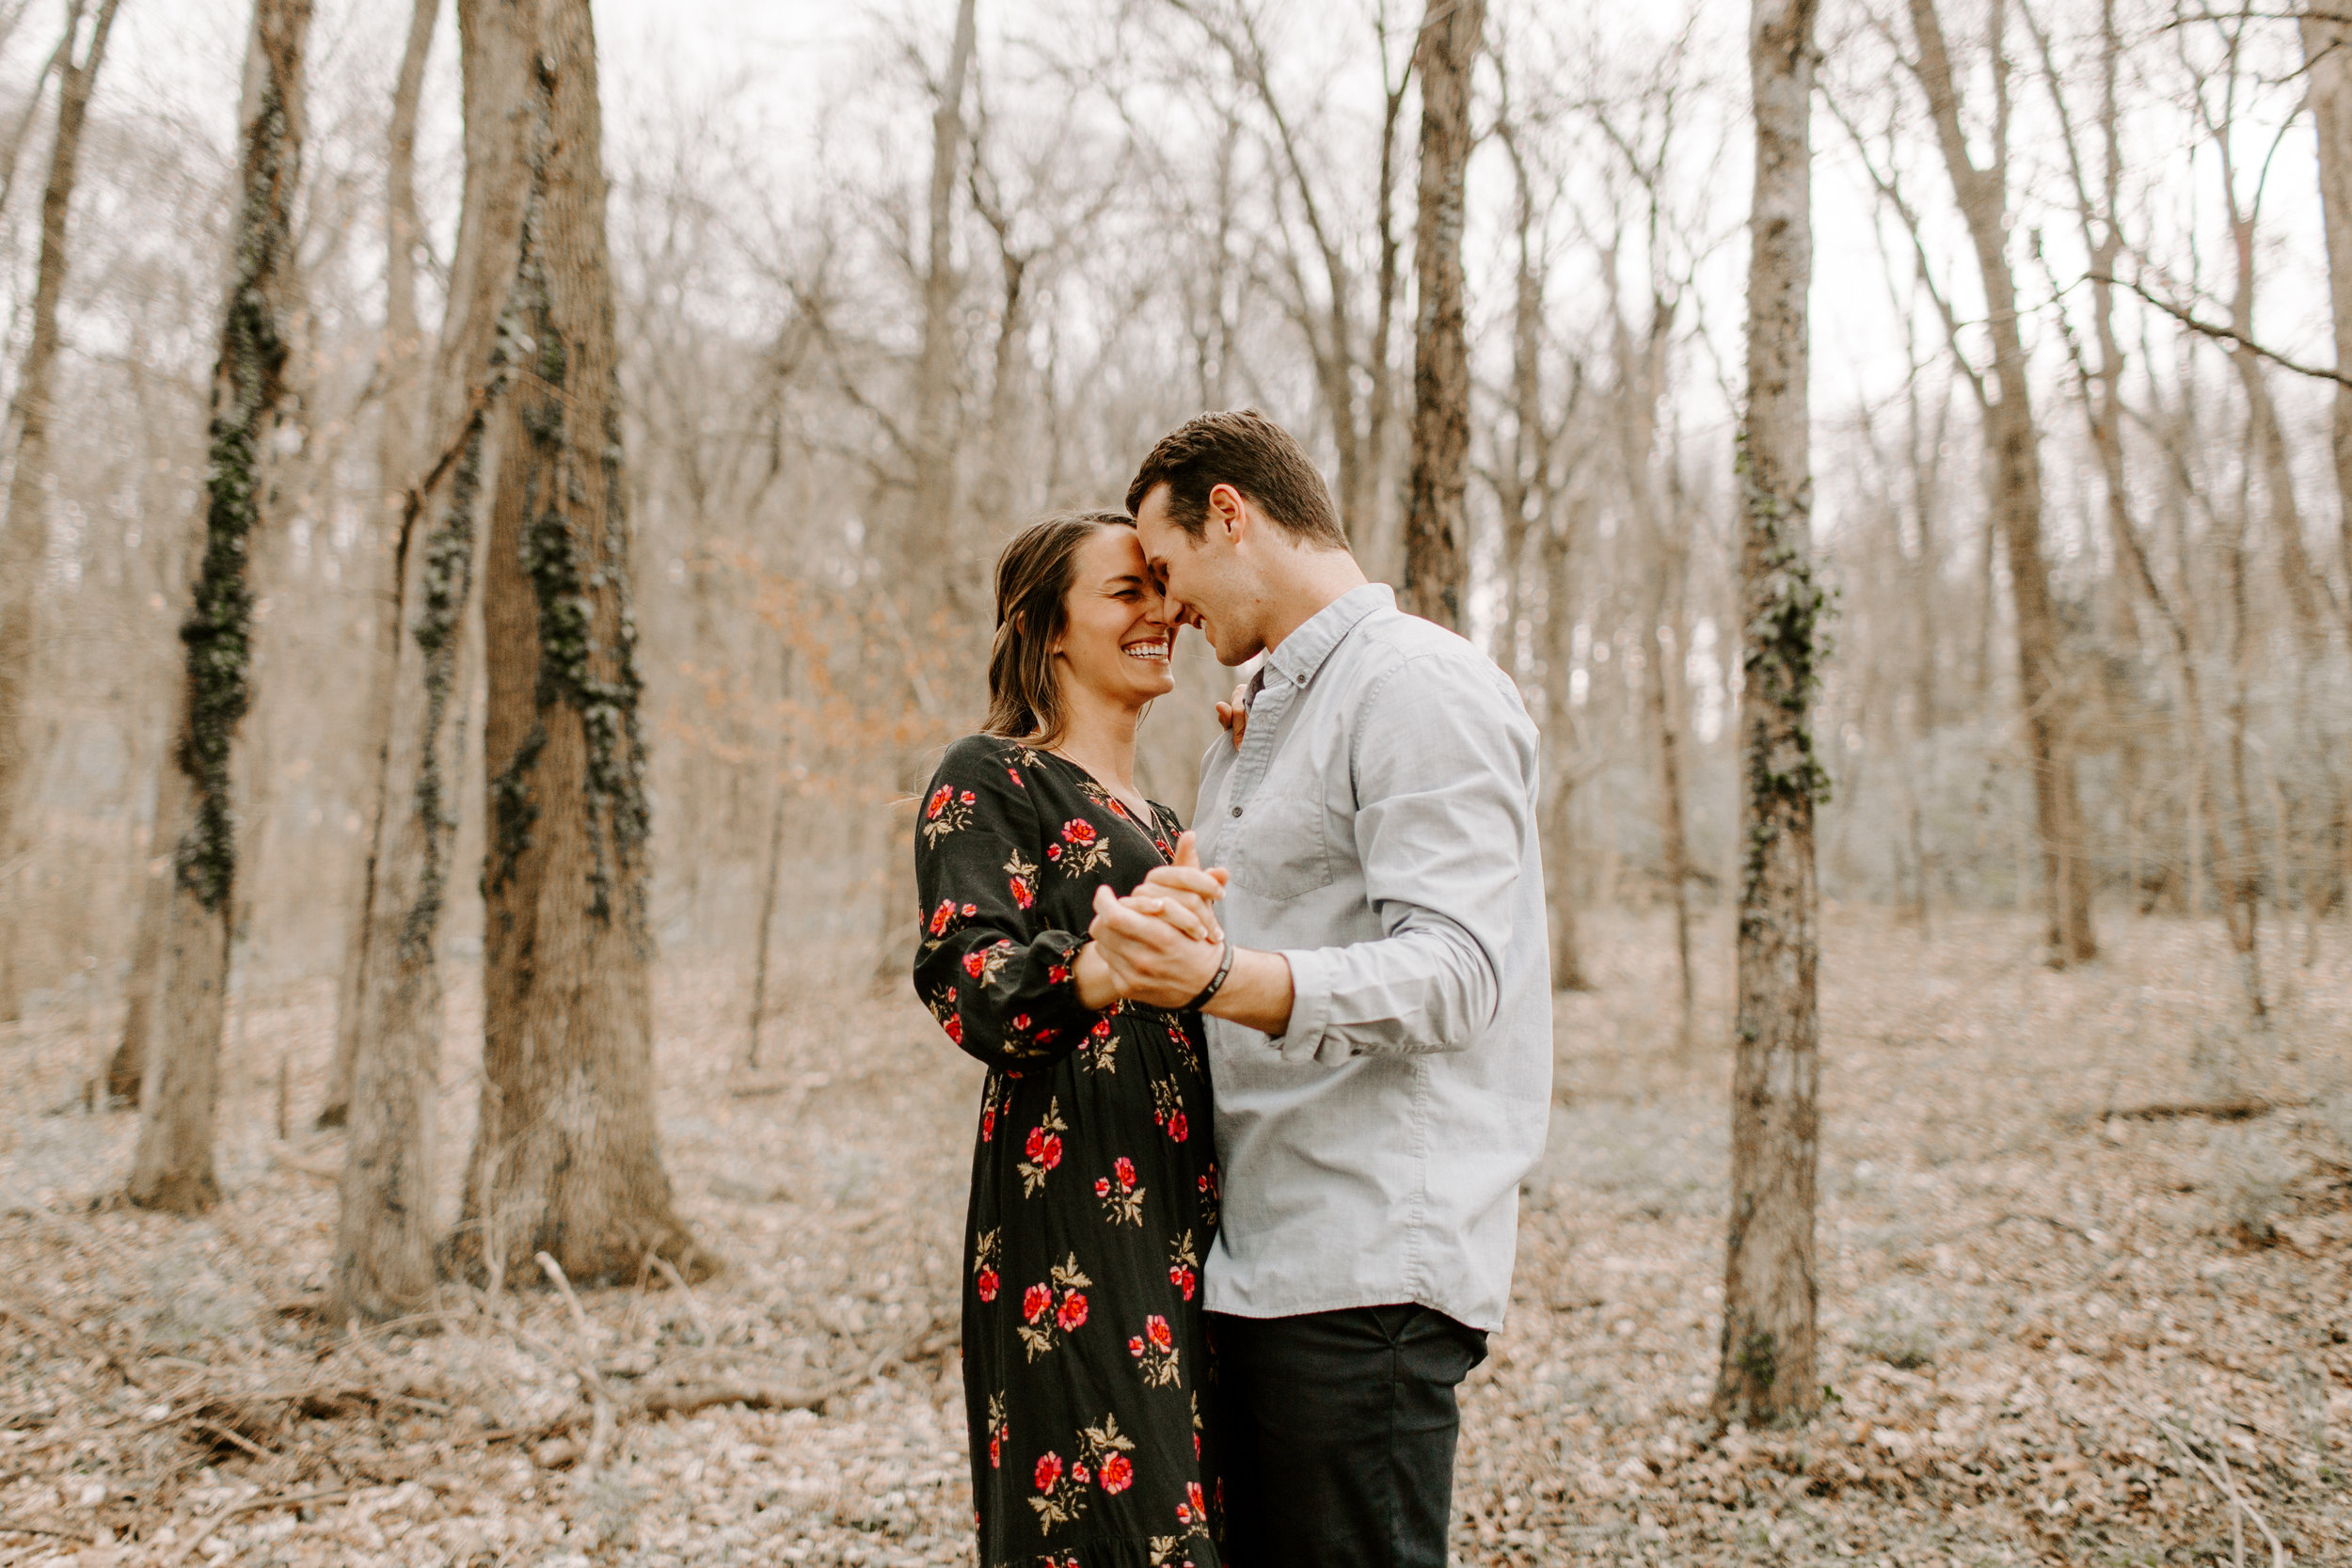 2018.03.16_kayleematt_nashville_engagement_elissavossphotography_previews_06.jpg